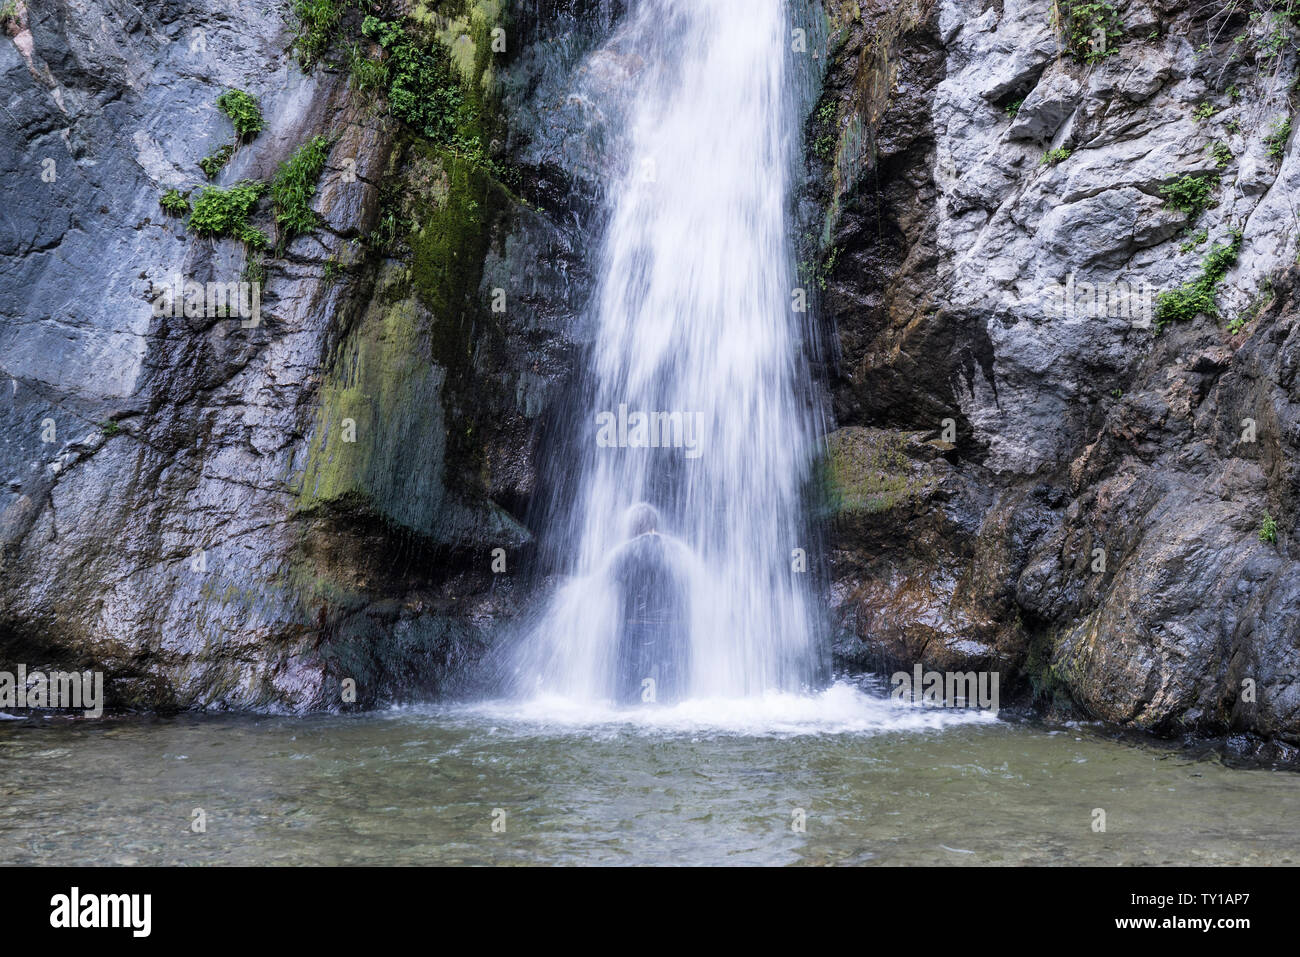 Los Angeles County, California, USA - June 23, 2019:  Silhouette of person cooling off under Eaton Falls in the San Gabriel Mountains near Pasadena in Stock Photo